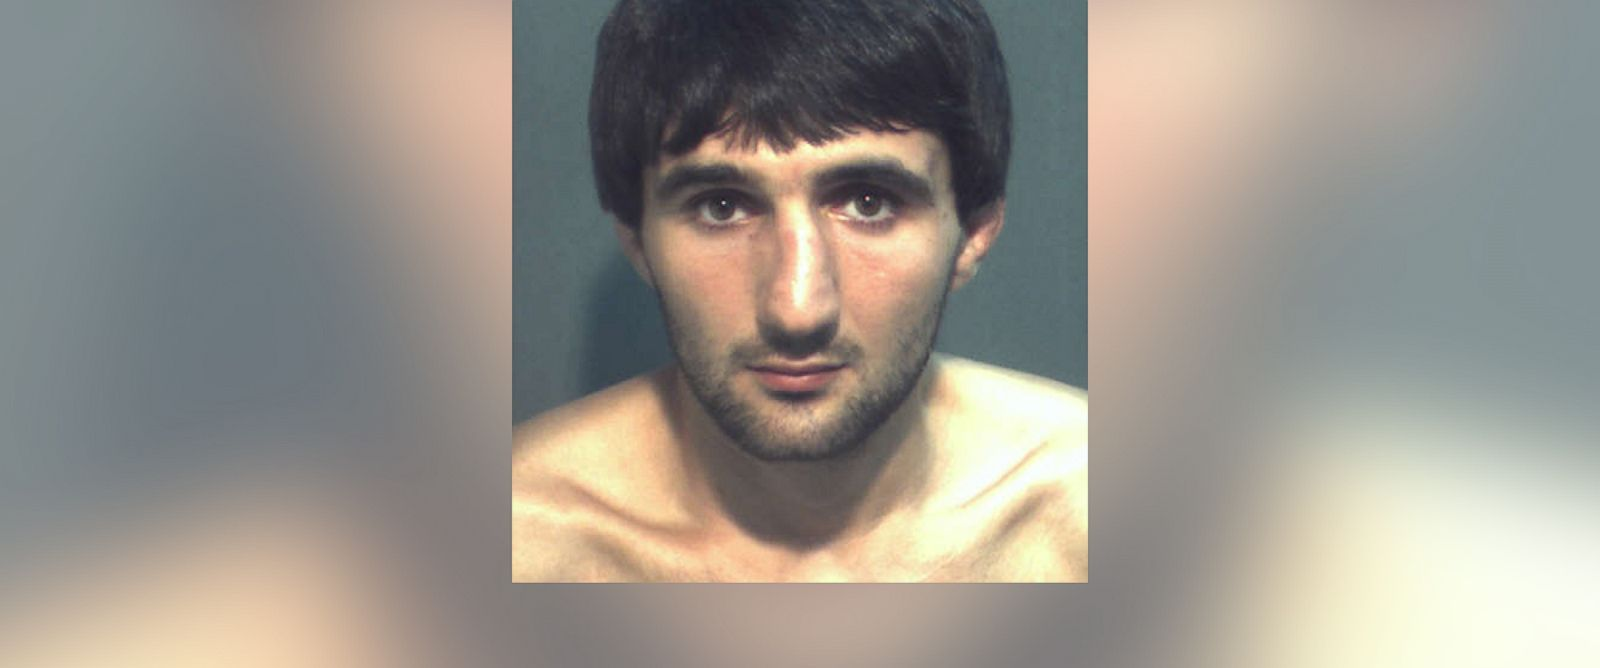 PHOTO: In this handout photo, Ibragim Todashev poses for his mug shot after being arrested for aggravated battery May 4, 2013 in Orlando, Fla.